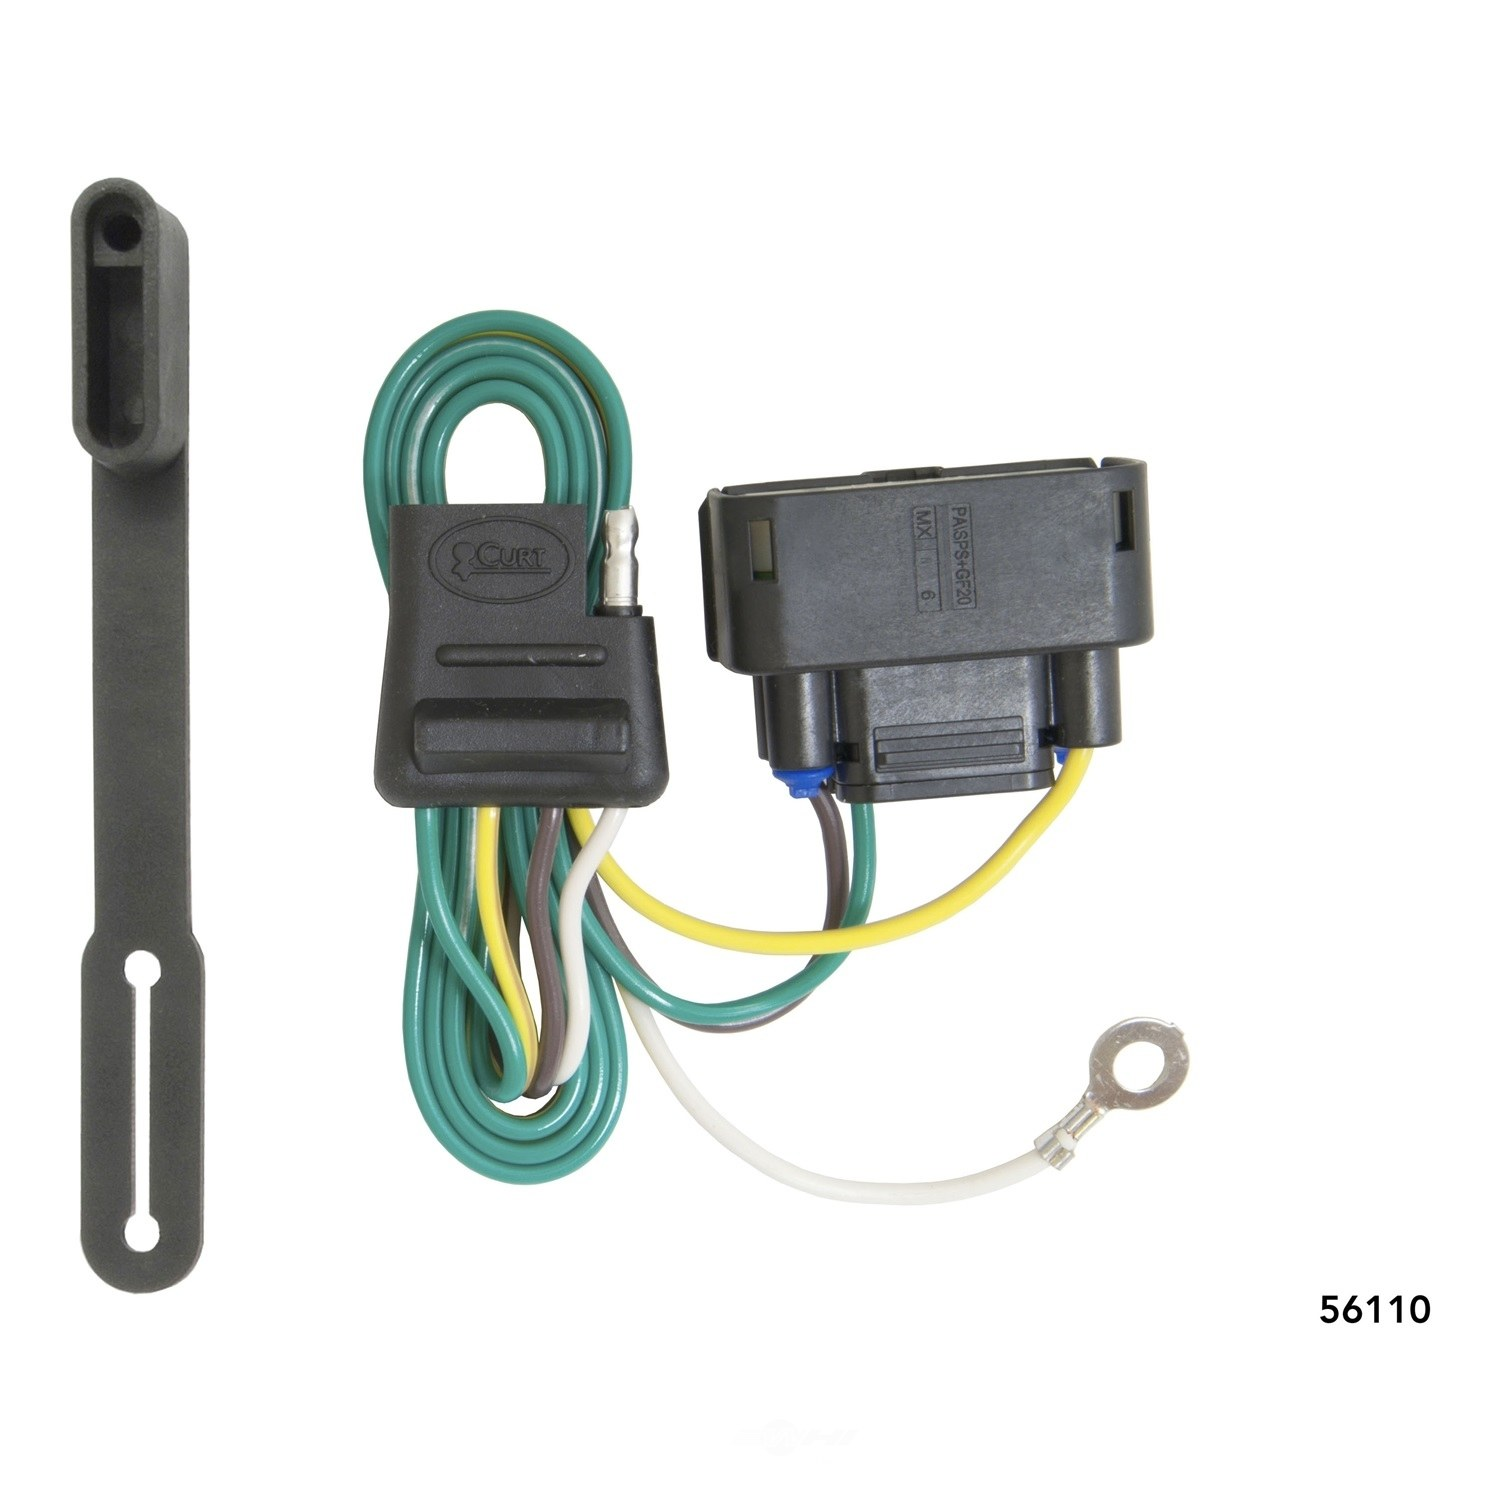 CURT MFG INC. - Vehicle To Trailer Connector W/harness - CUR 56110